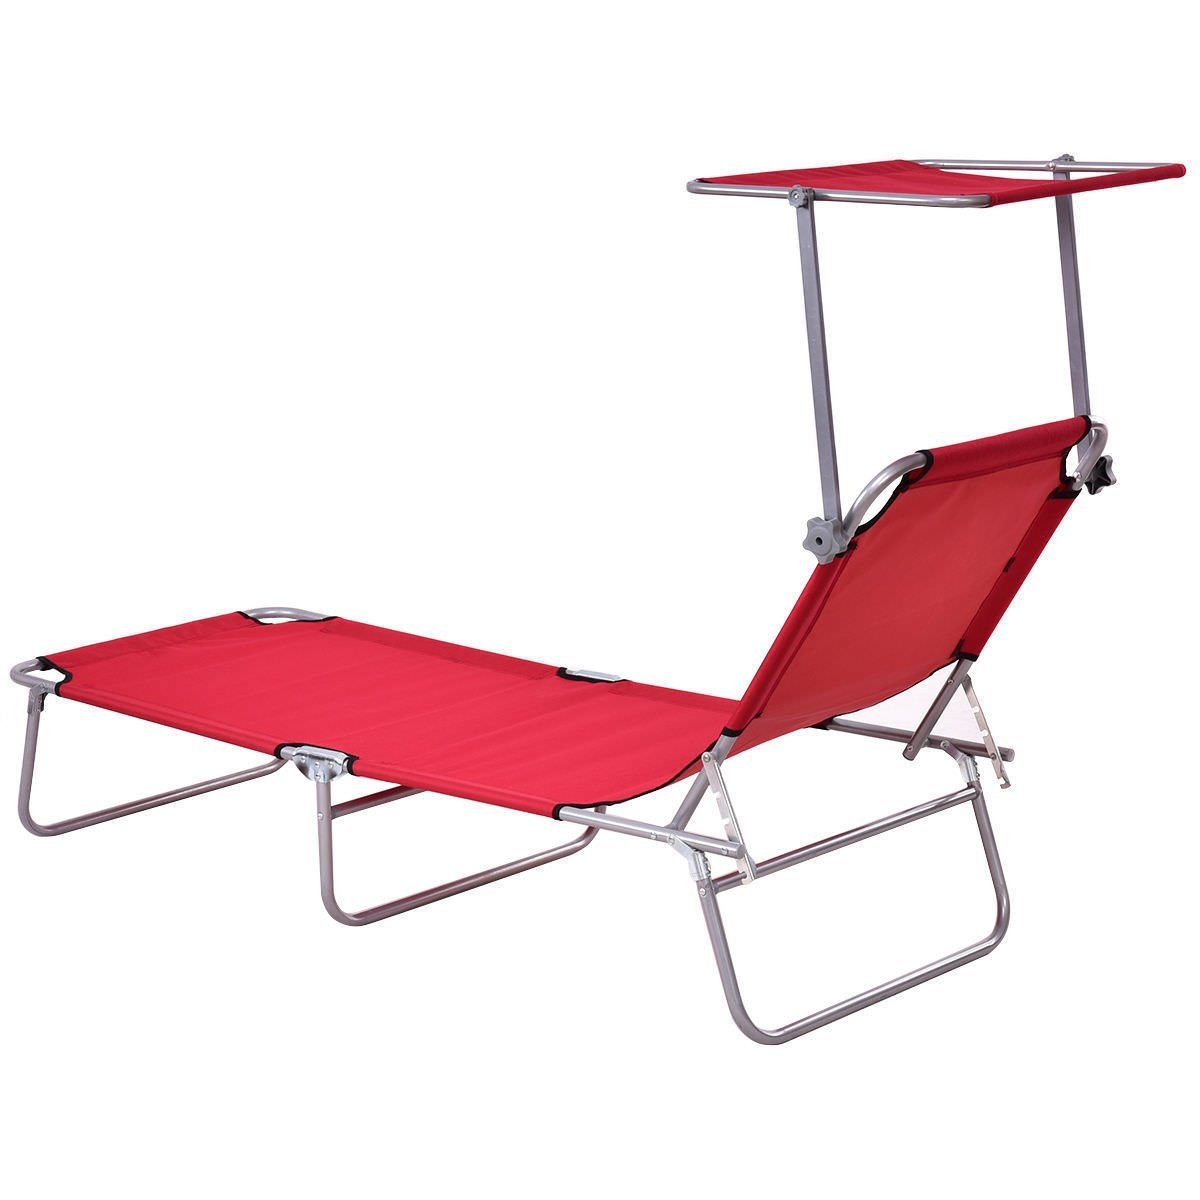 AK Energy Red Foldable Outdoor Relax Chaise Lounge Beach Chair Bed Camping Recliner Sun Shade Canopy